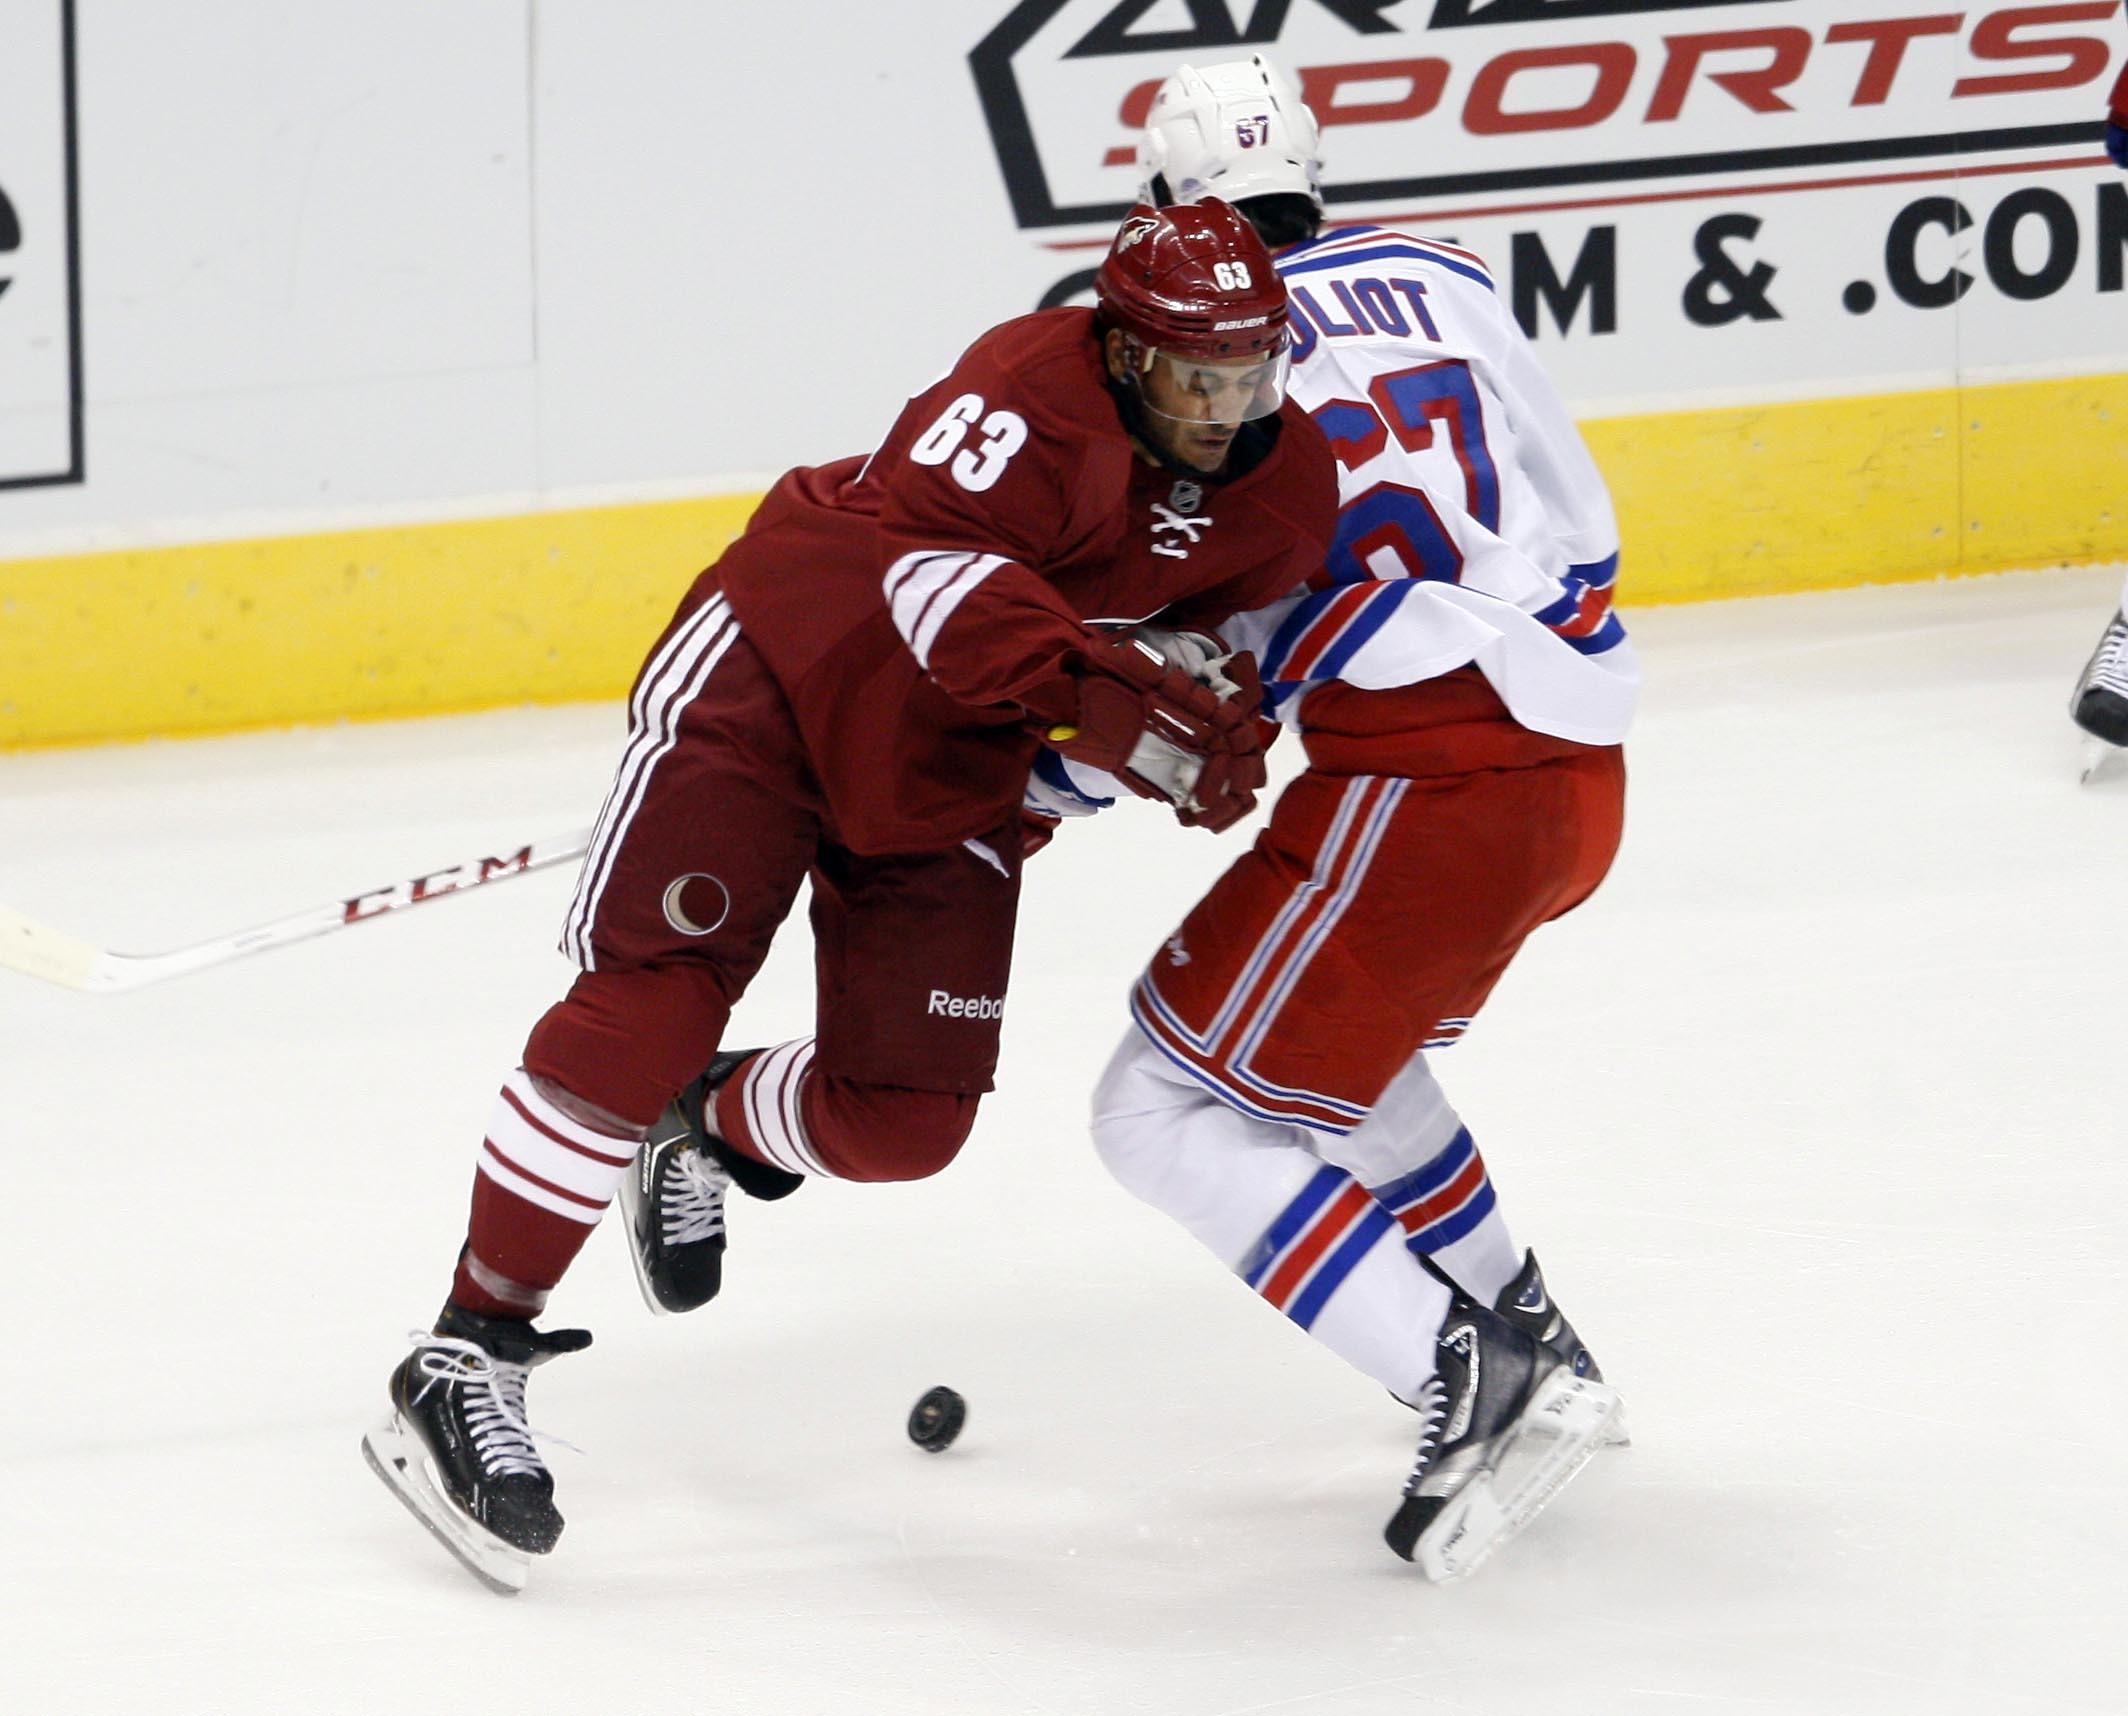 Mike Ribeiro (63) of the Coyotes and Benoit Pouliot (67) of the Rangers collide during the first period of an NHL hockey game Thursday, Oct. 3, 2013, in Glendale, Az